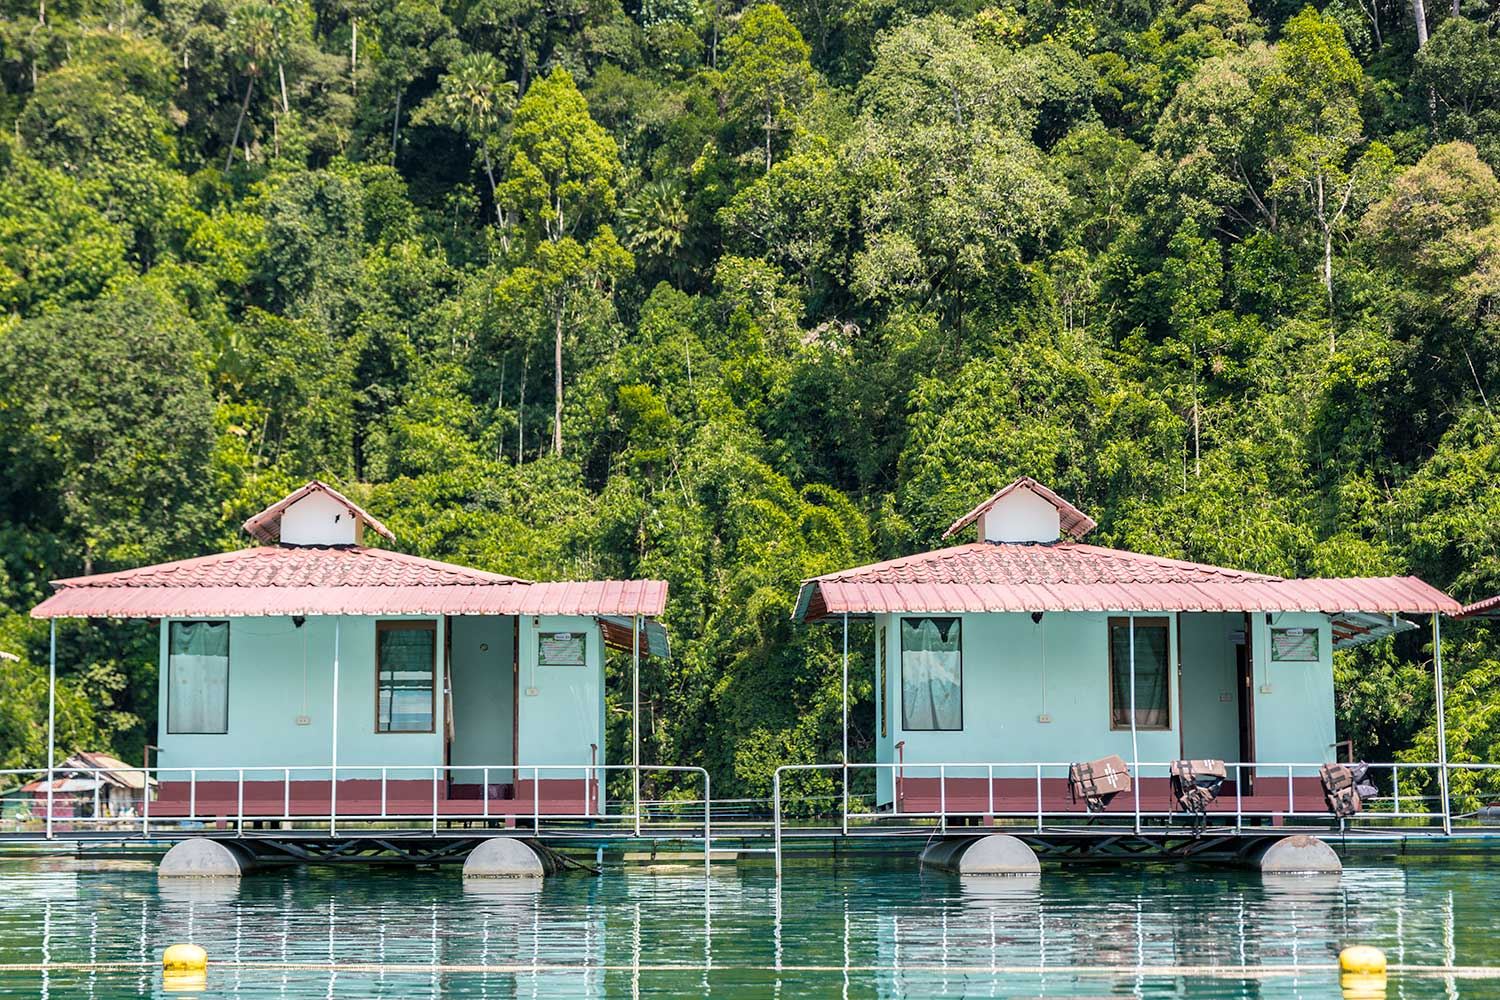 Cheow Lan floating bungalows